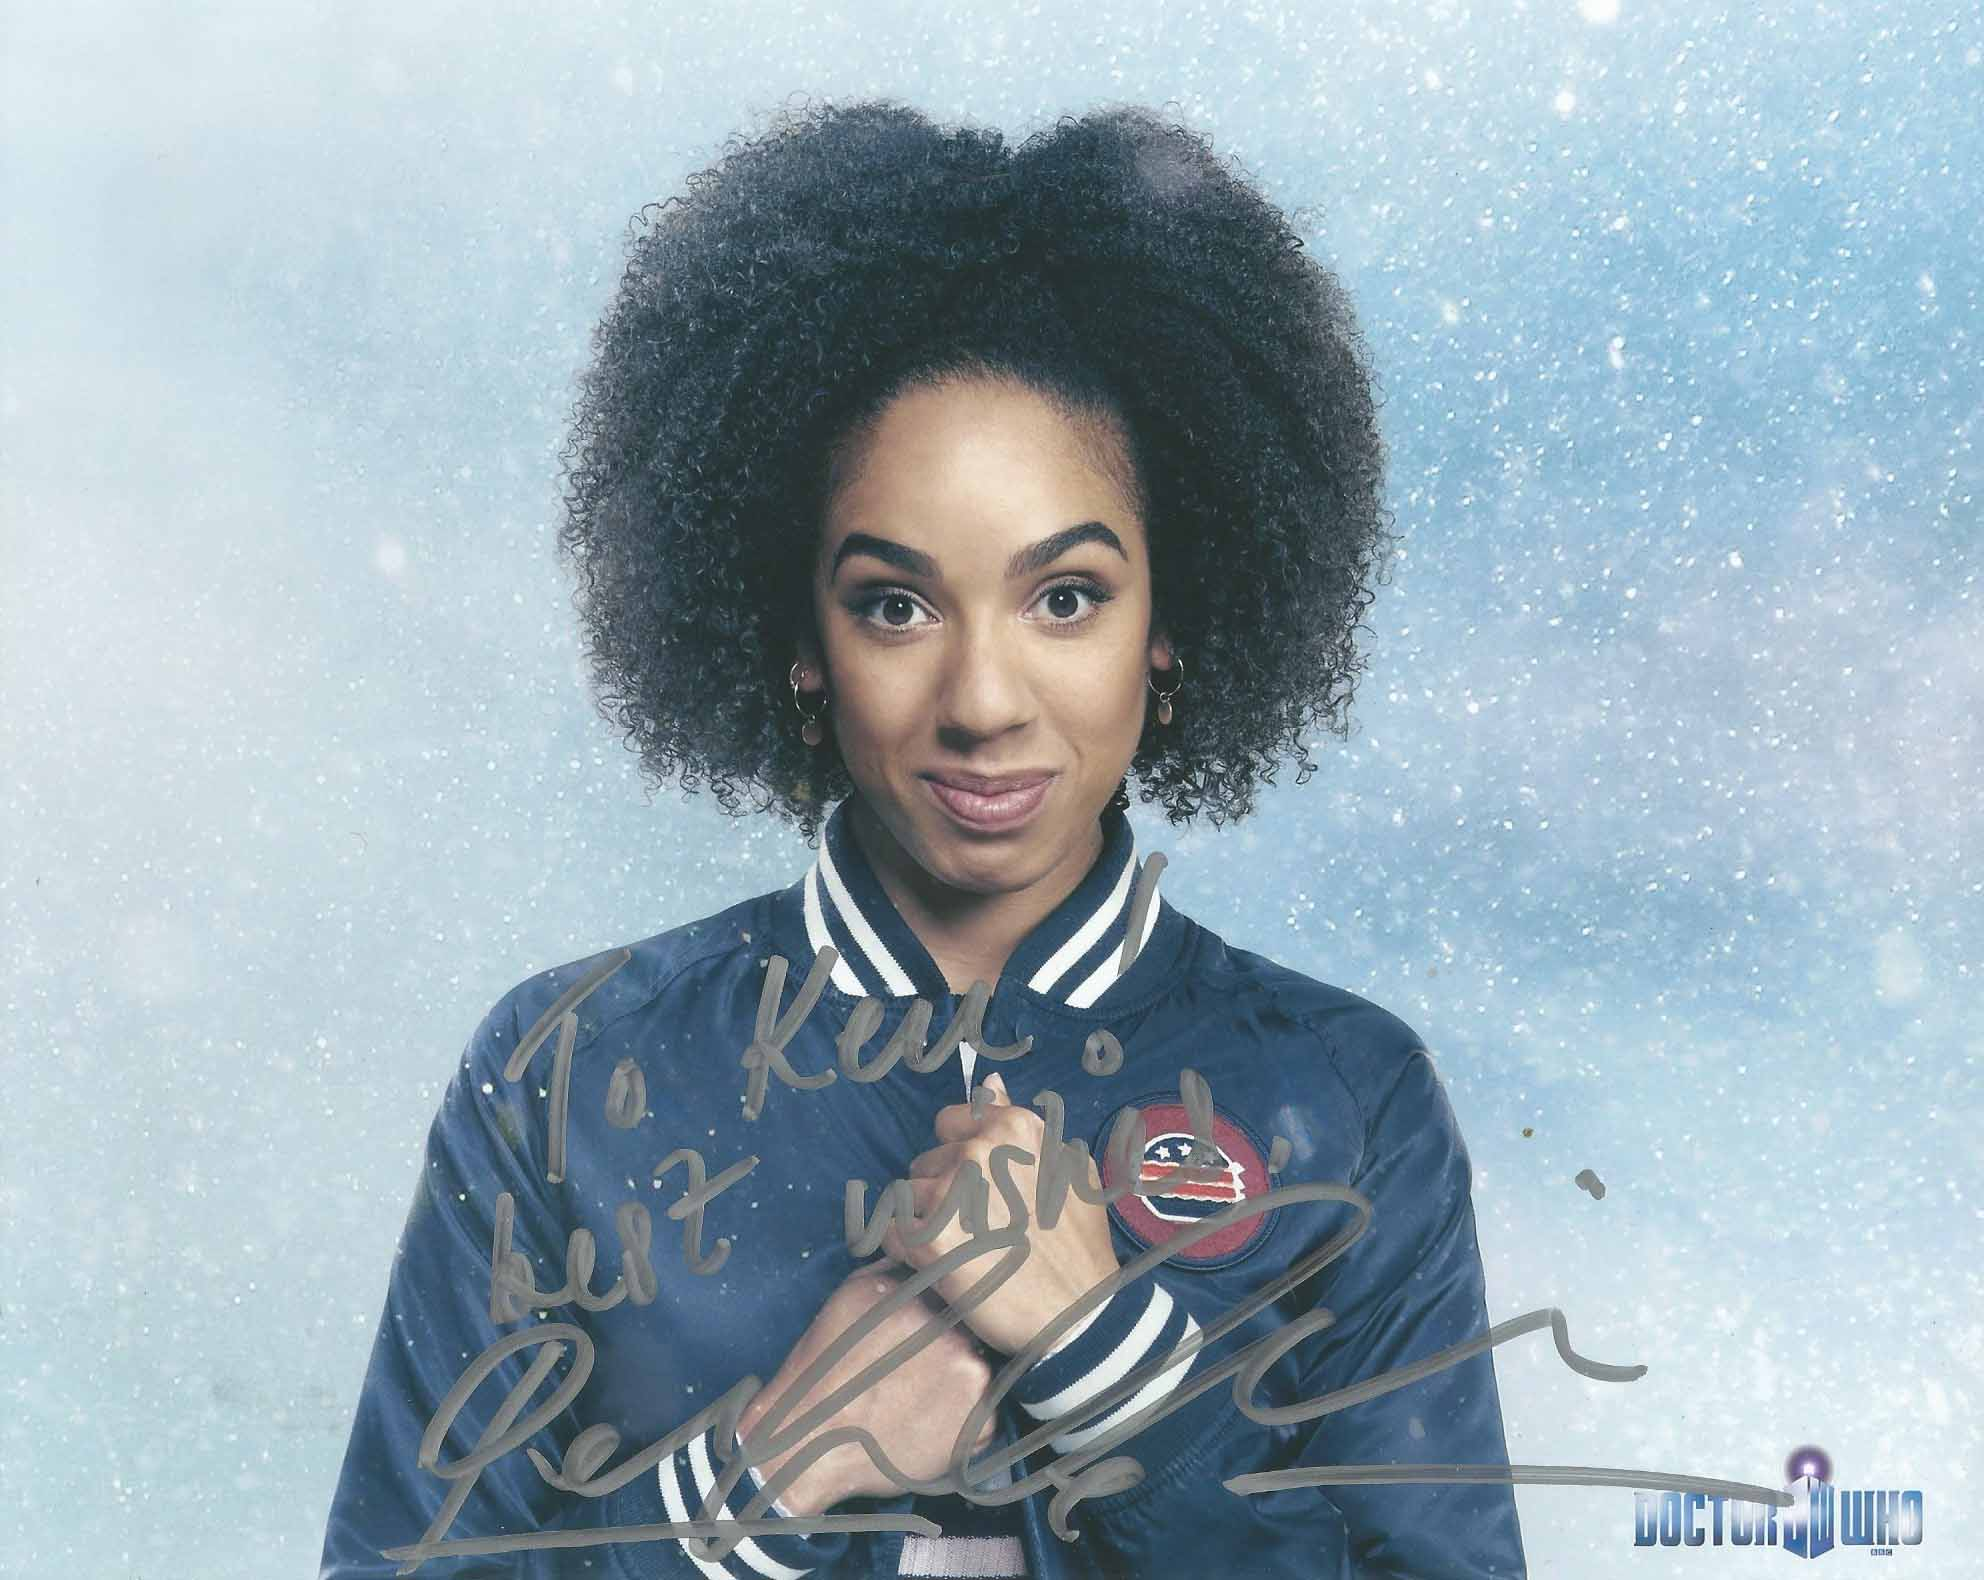 PearlMackie_autograph_small.jpg